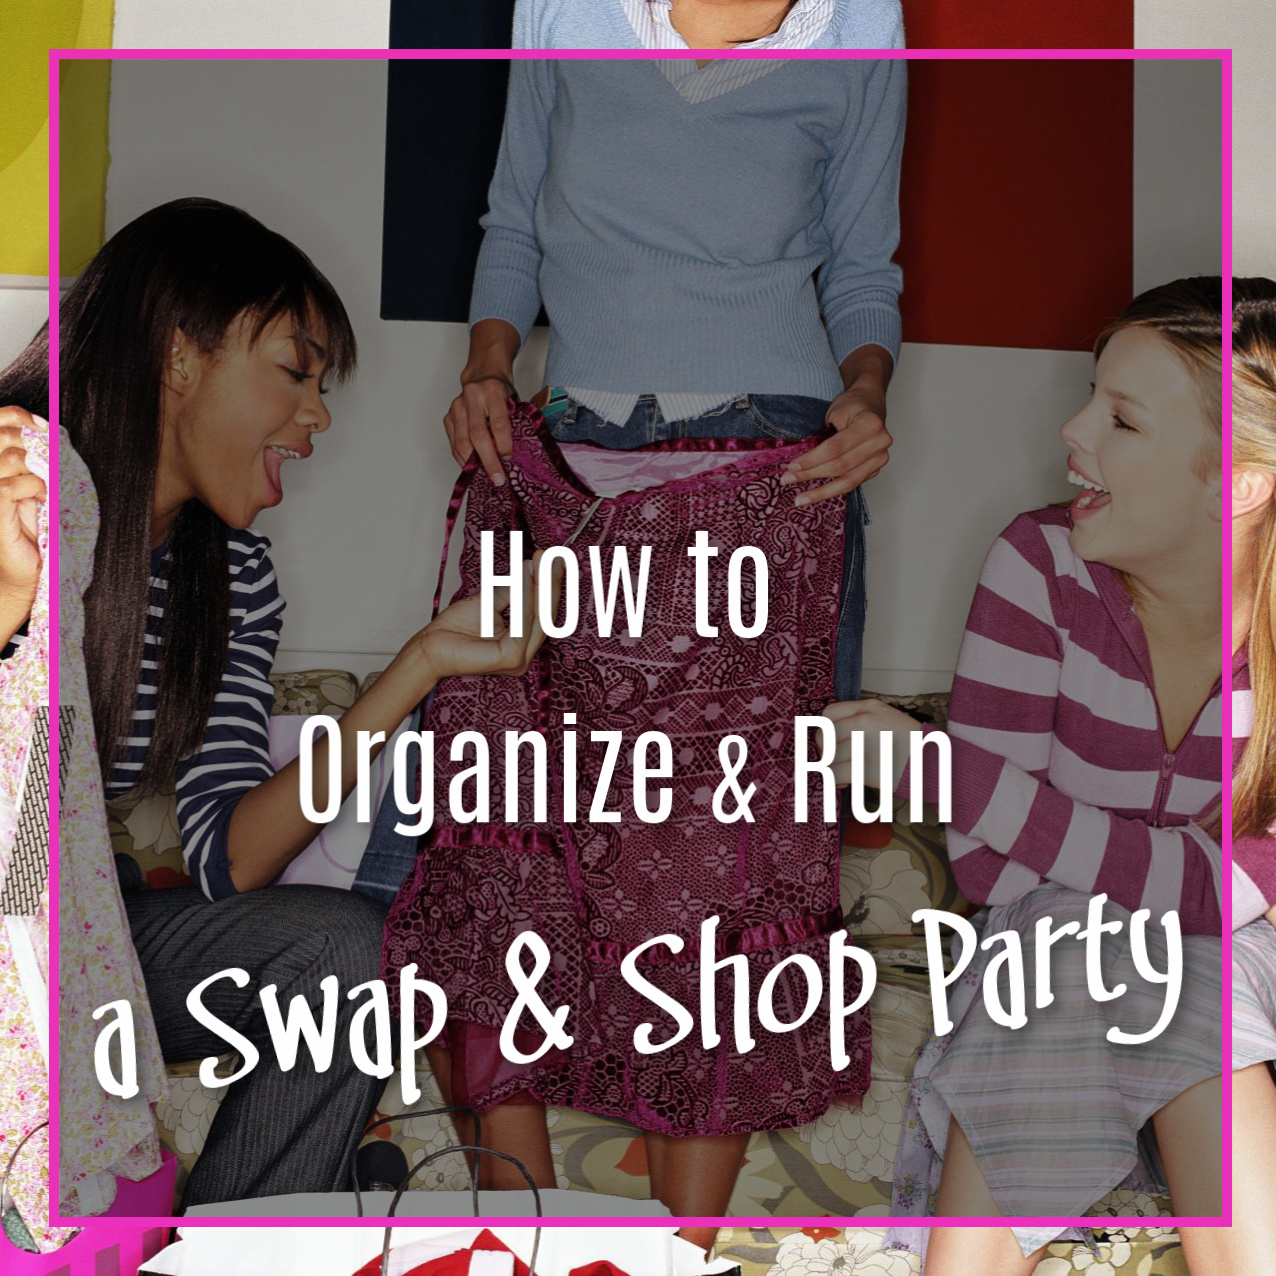 Style Clinic, How to Run an a Swap and Shop Party, Ann Reinten, Image Innovators. Fashion Tips, Image Consultant Tools, Image Consultant Training, Image Consultant Online Training,